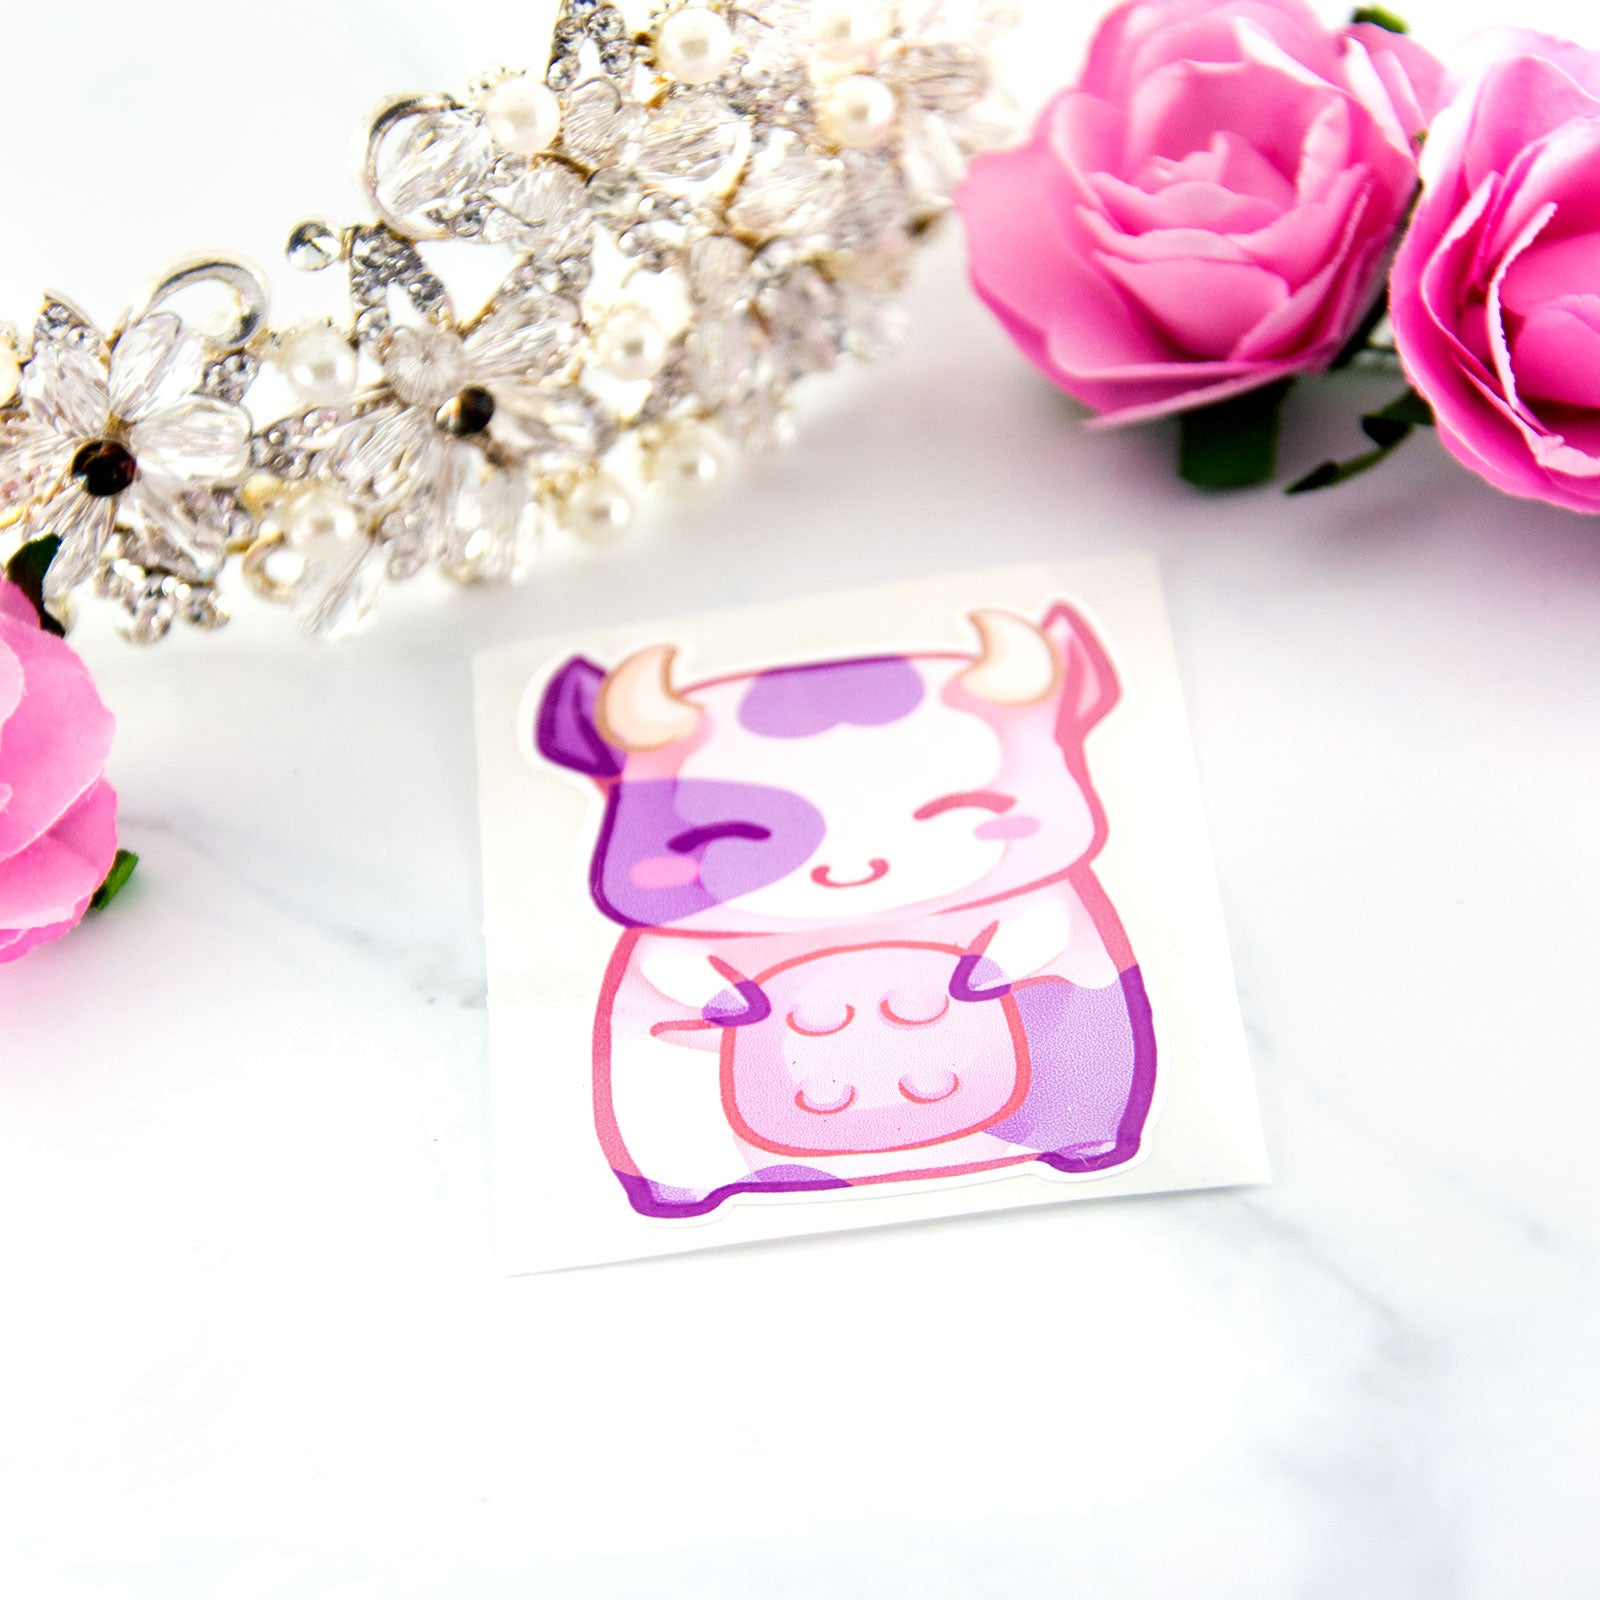 Cute chibi baby pink manga cow sticker - MadModesty